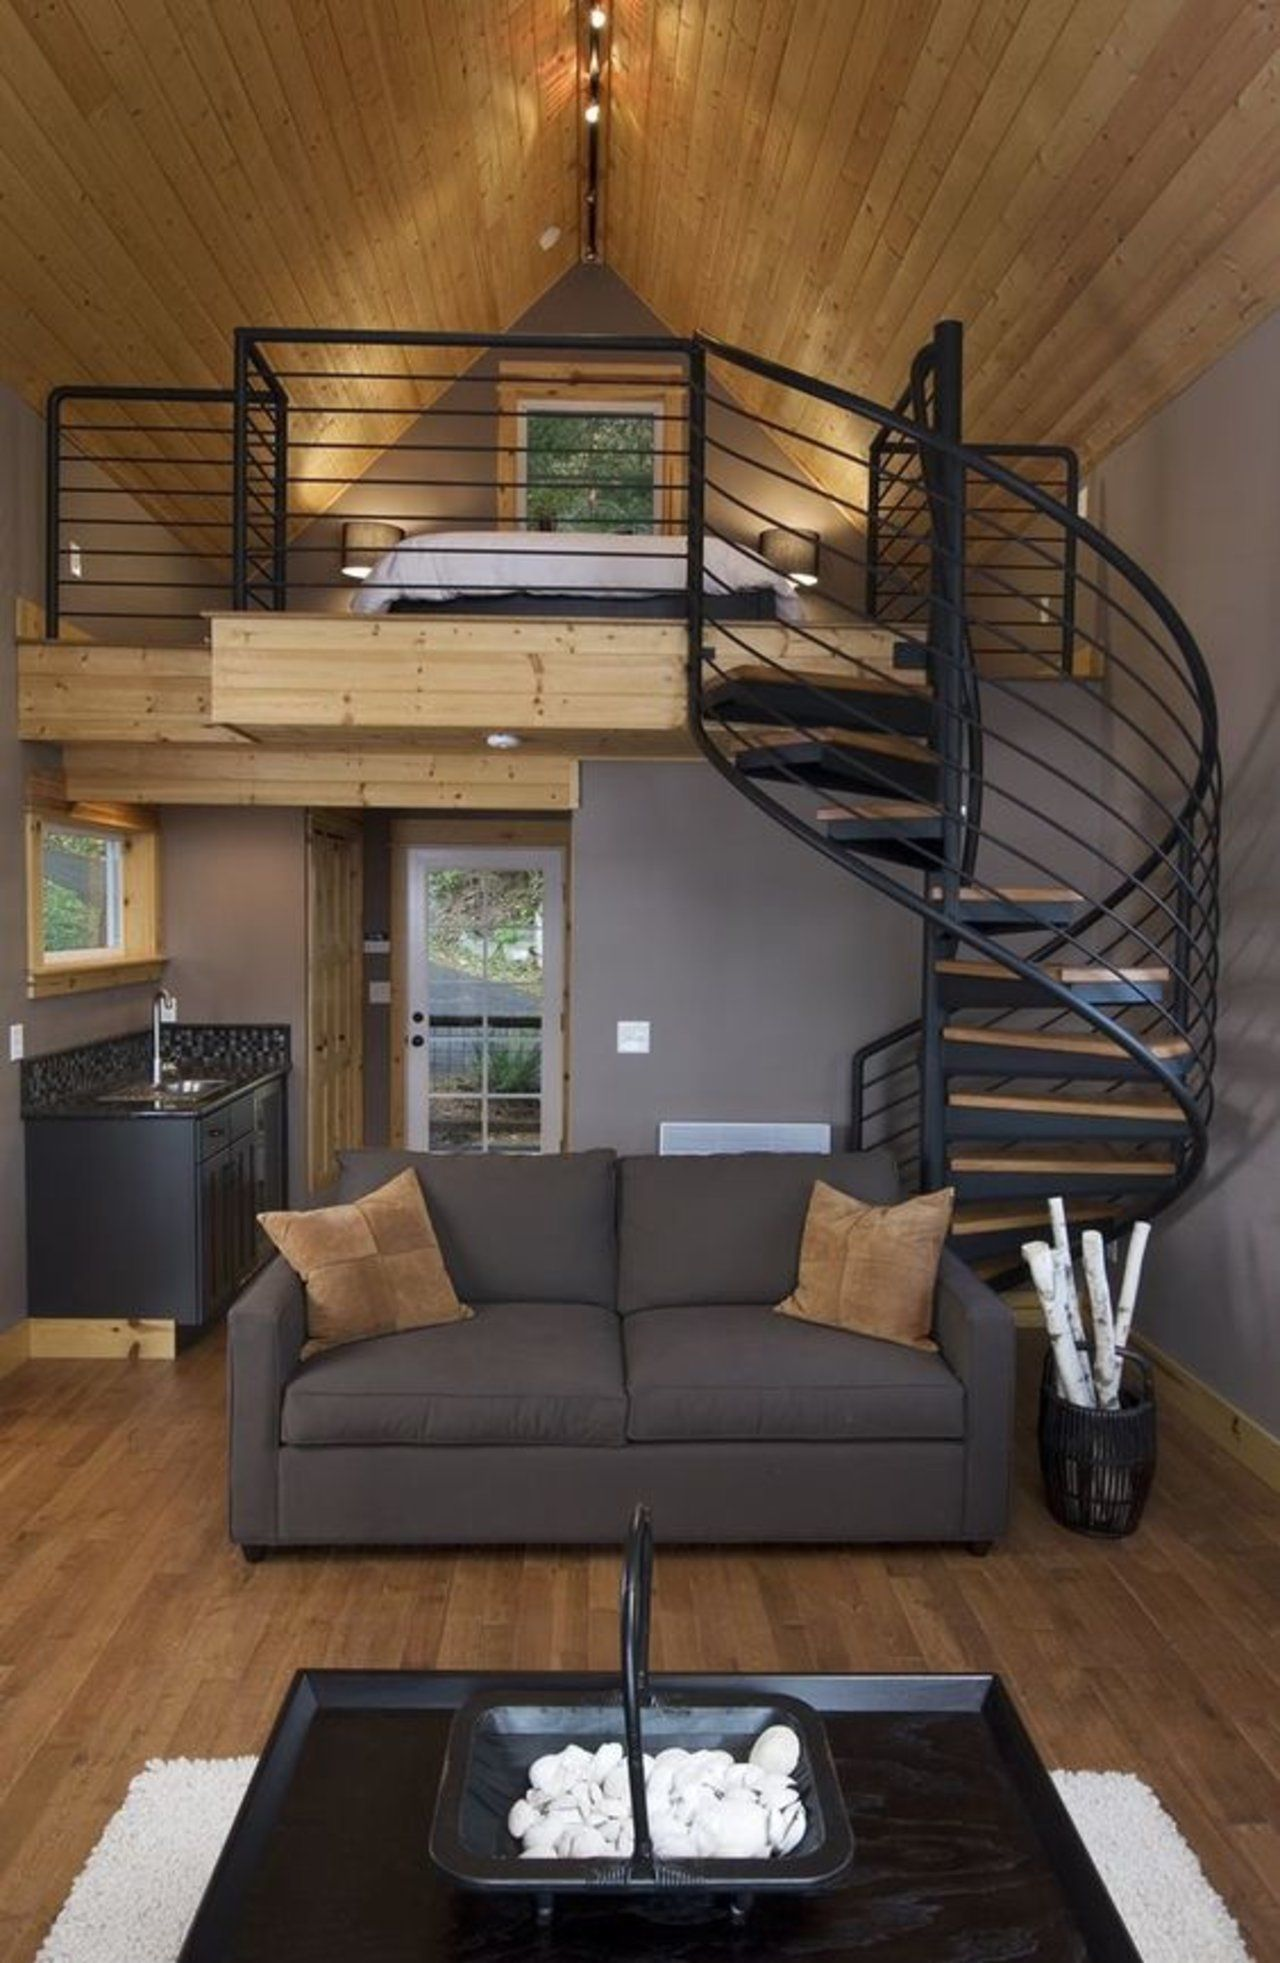 6 tiny houses we could actually live in tiny house interiorswood